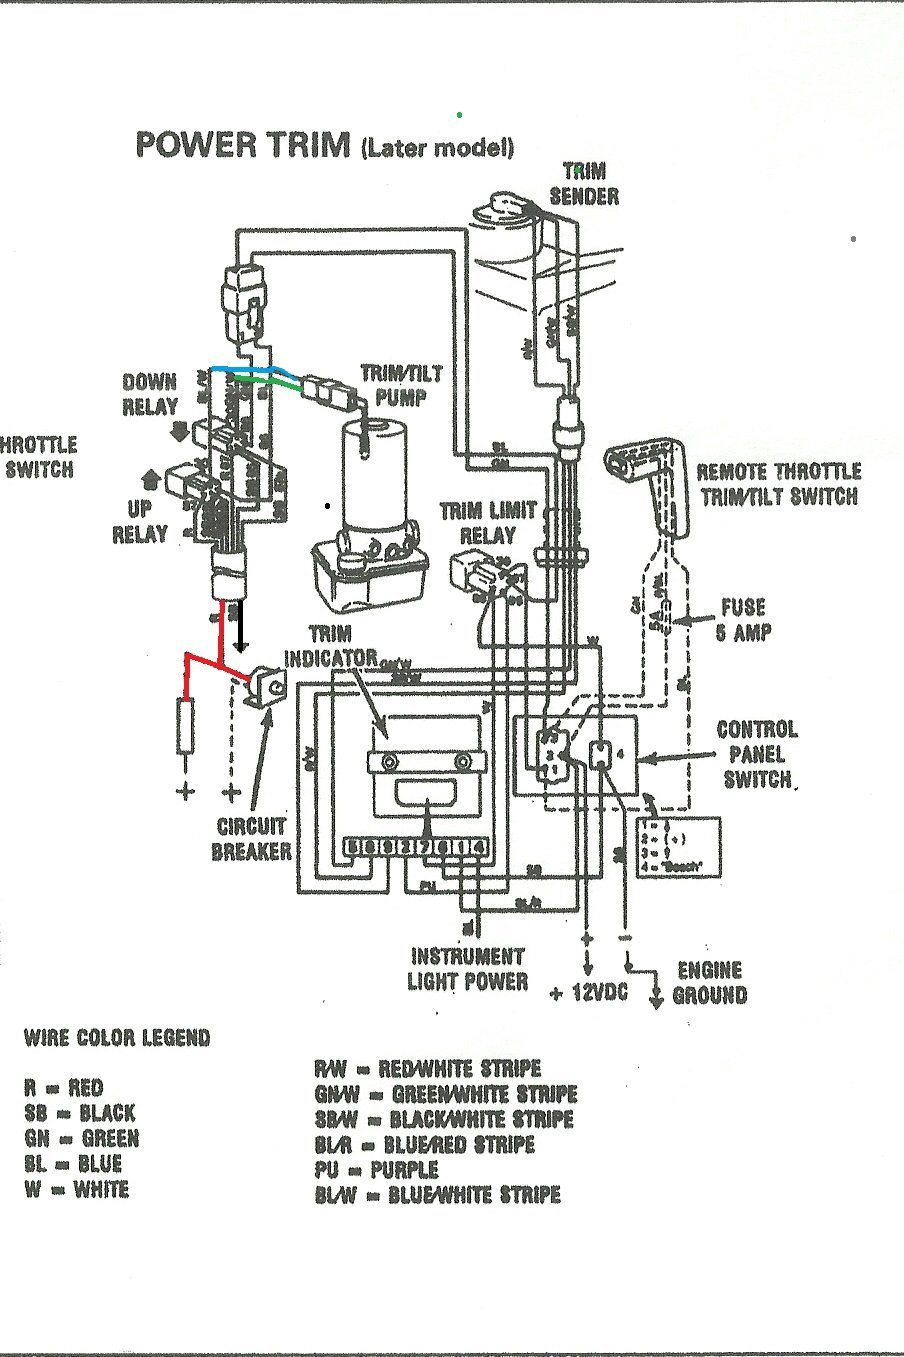 volvo penta trim wiring diagram wiring diagram optionvolvo trim wiring diagram wiring diagram inside volvo penta trim pump wiring diagram volvo penta trim wiring diagram